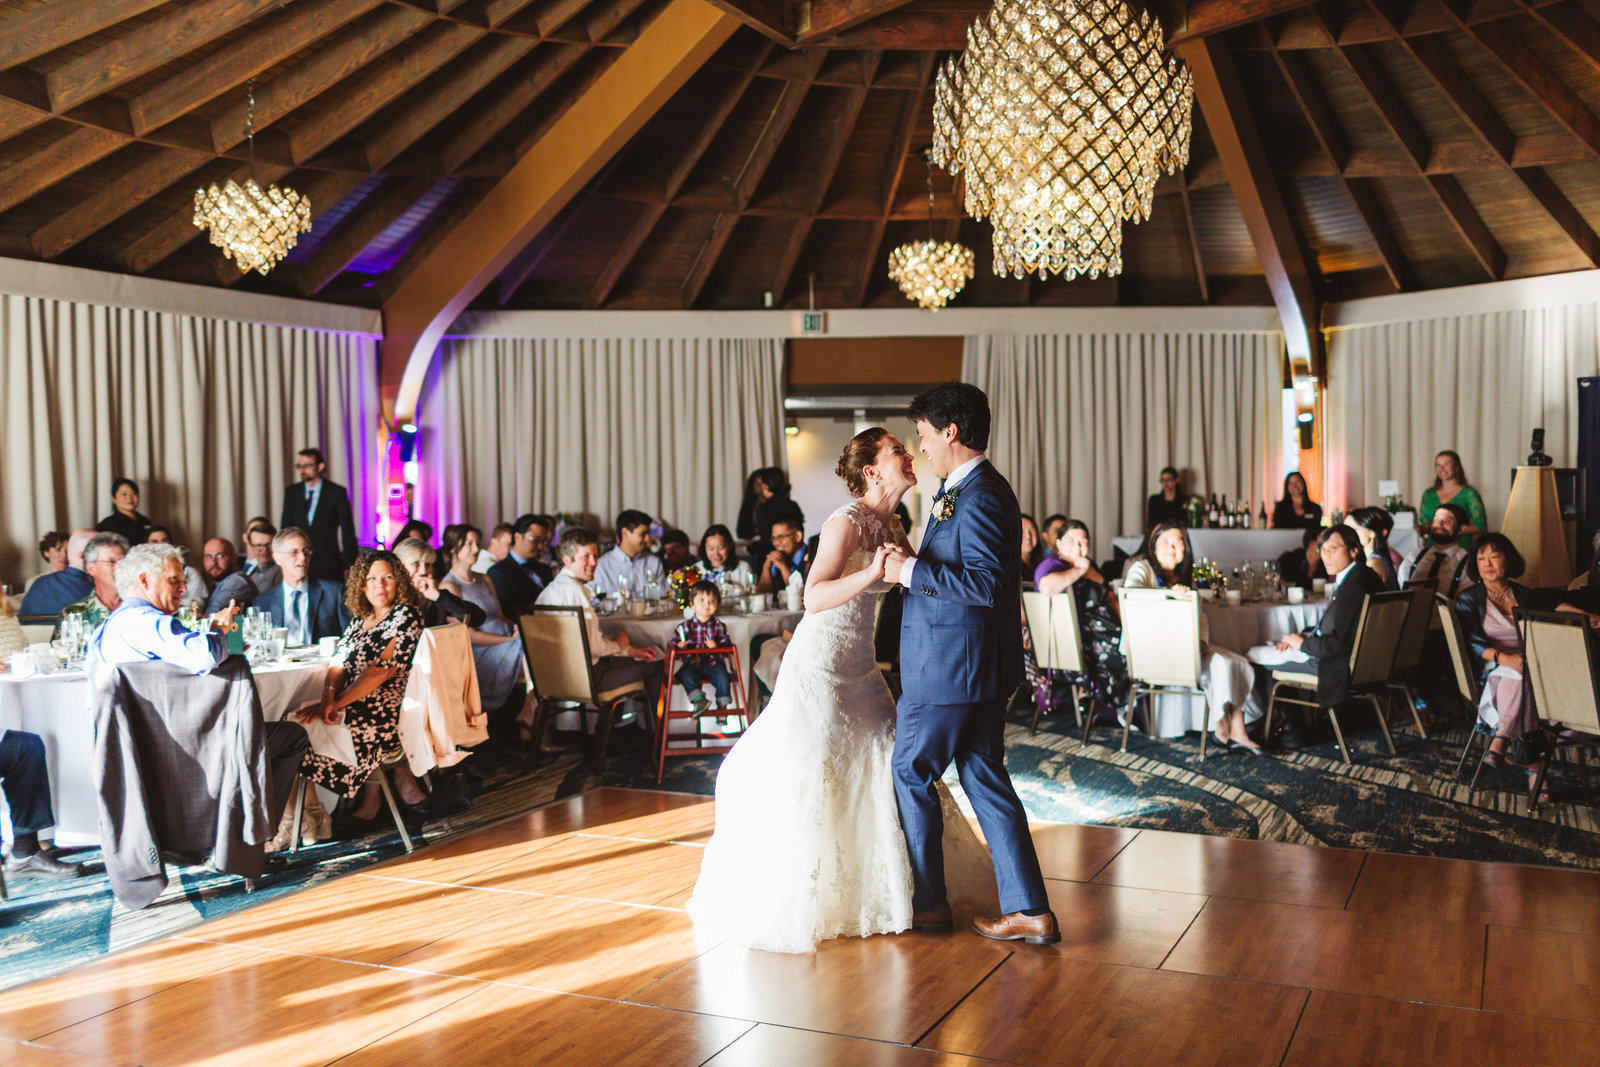 berkeley wedding couple's first dance as guests look on